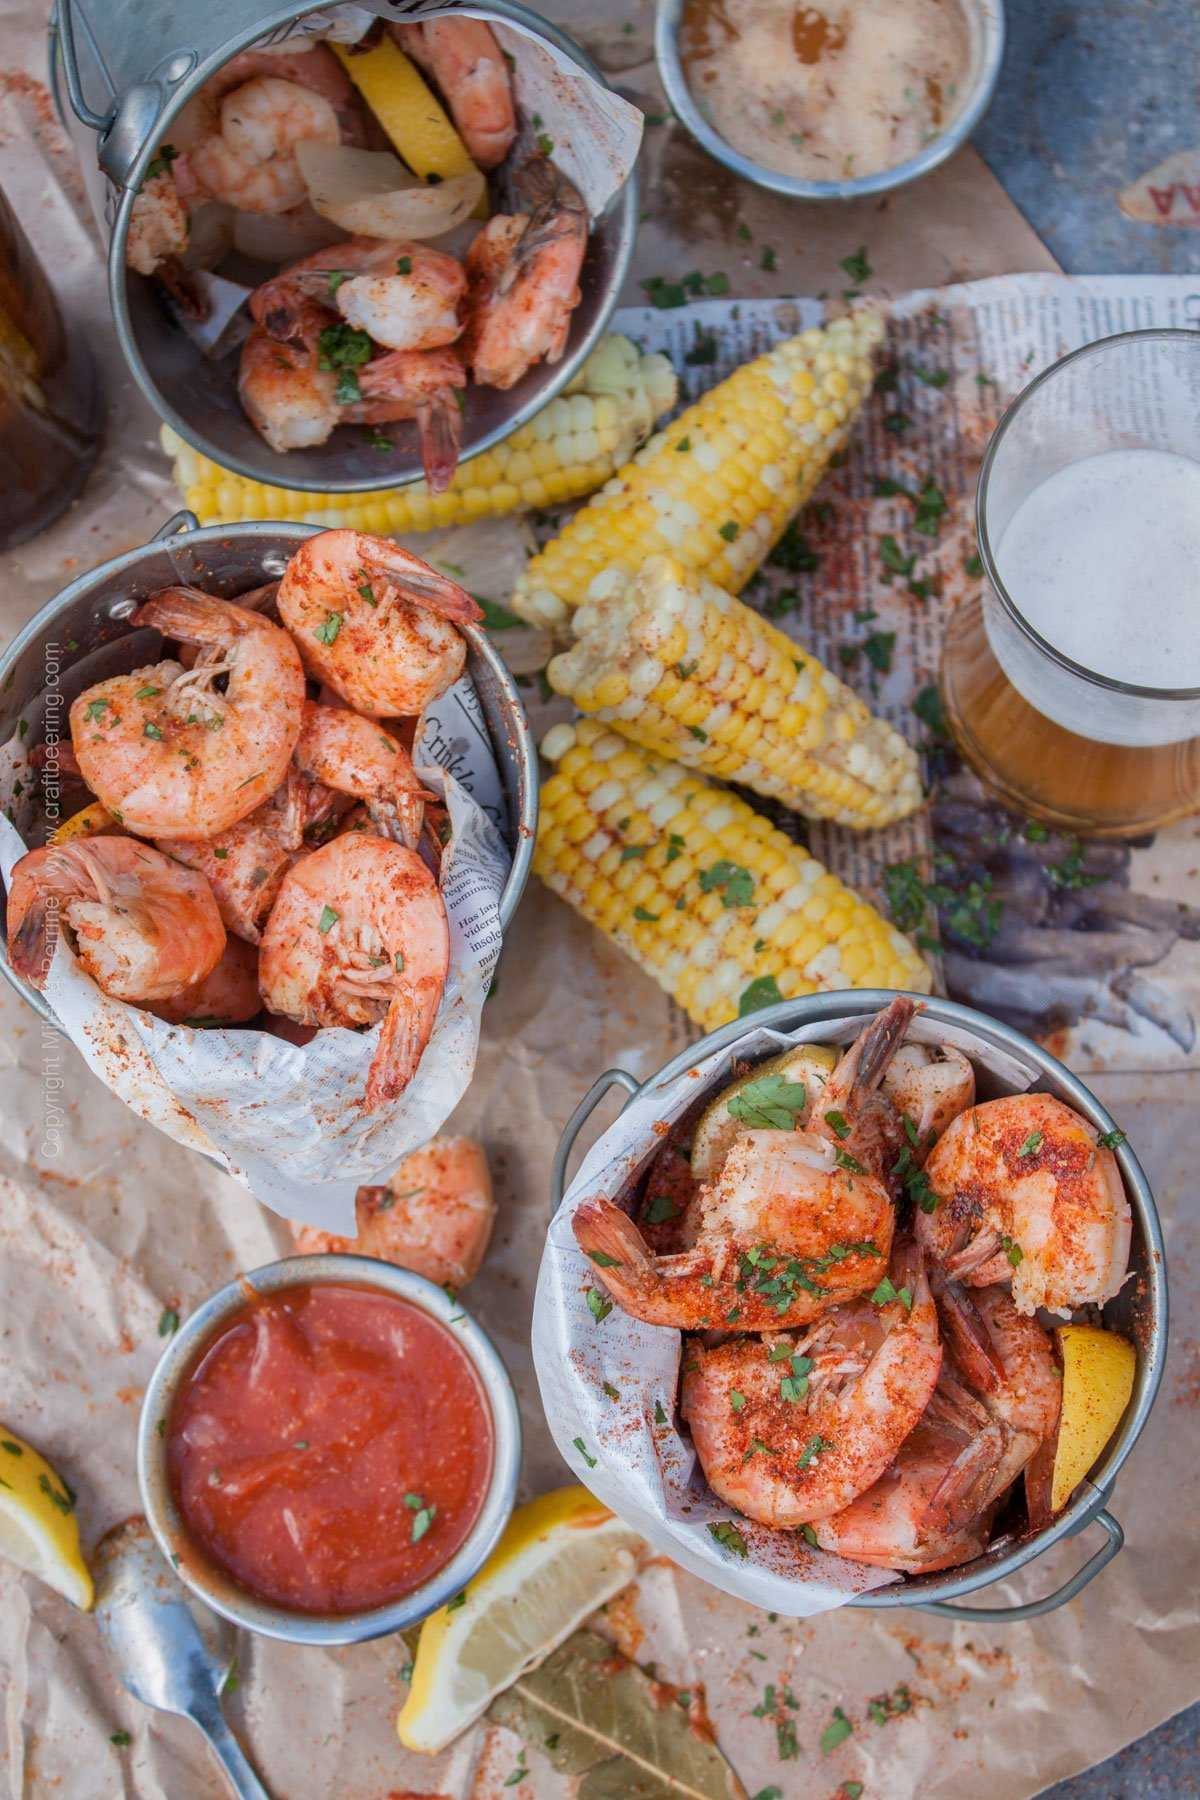 Shrimp recipe for beer: a delicious seafood appetizer